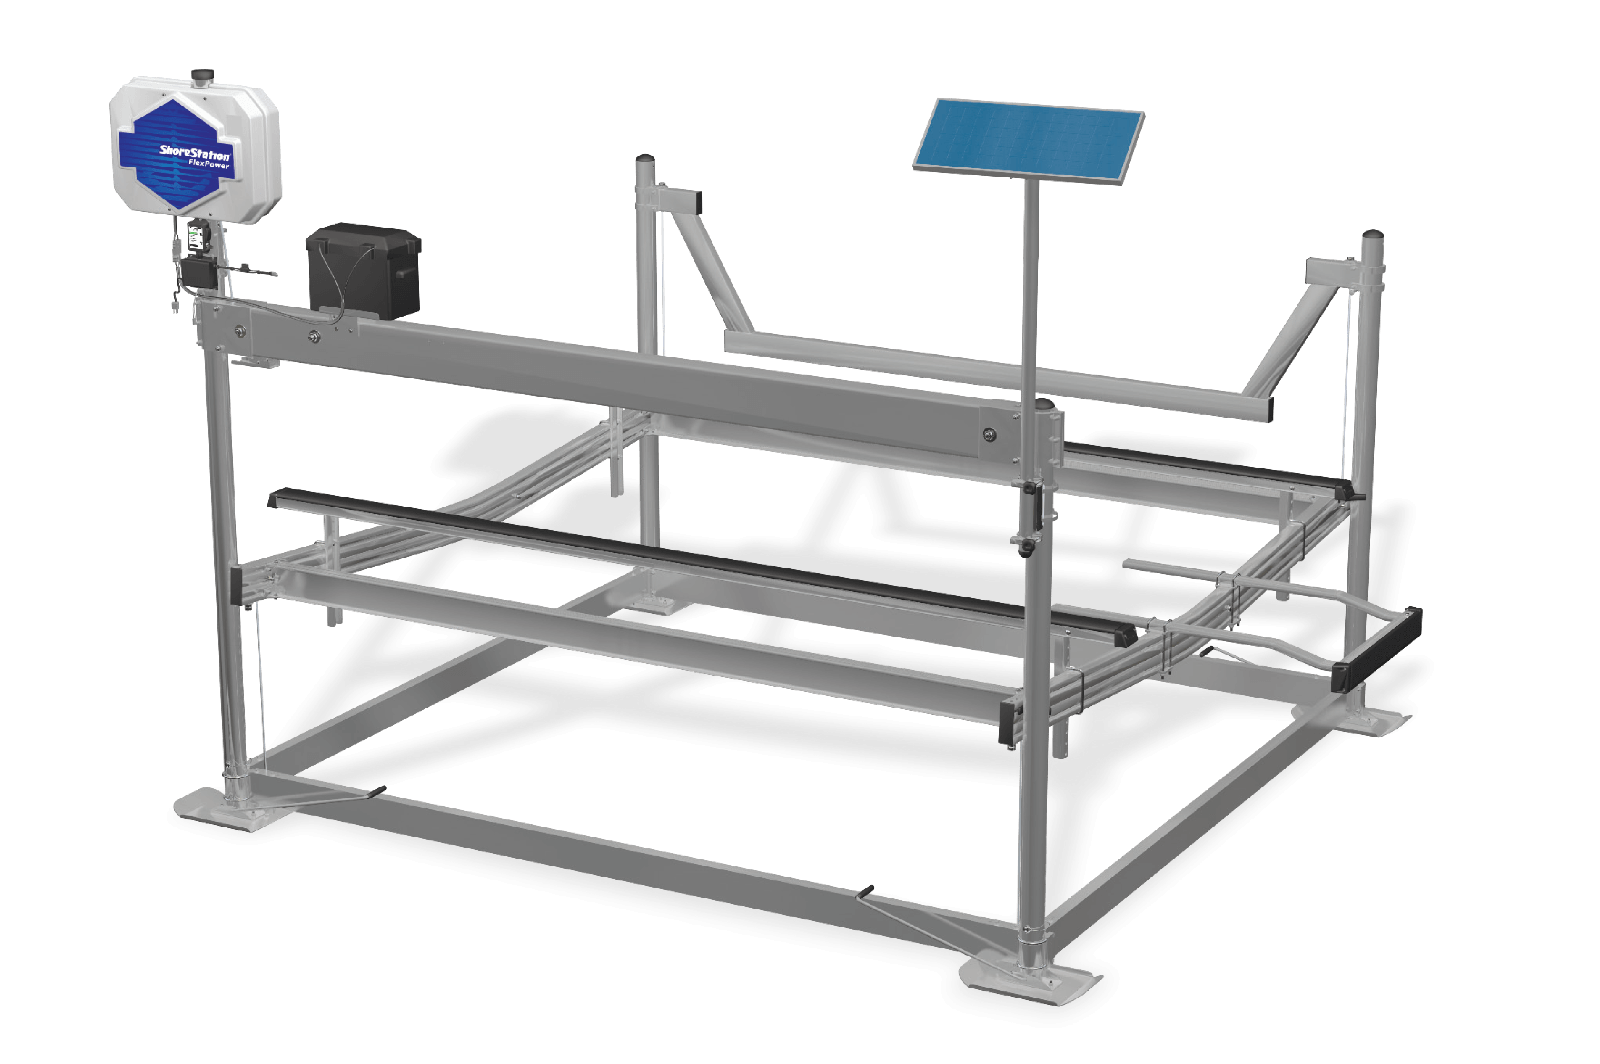 Power systems free standing boat lifts shorestation for Electric boat lift motor